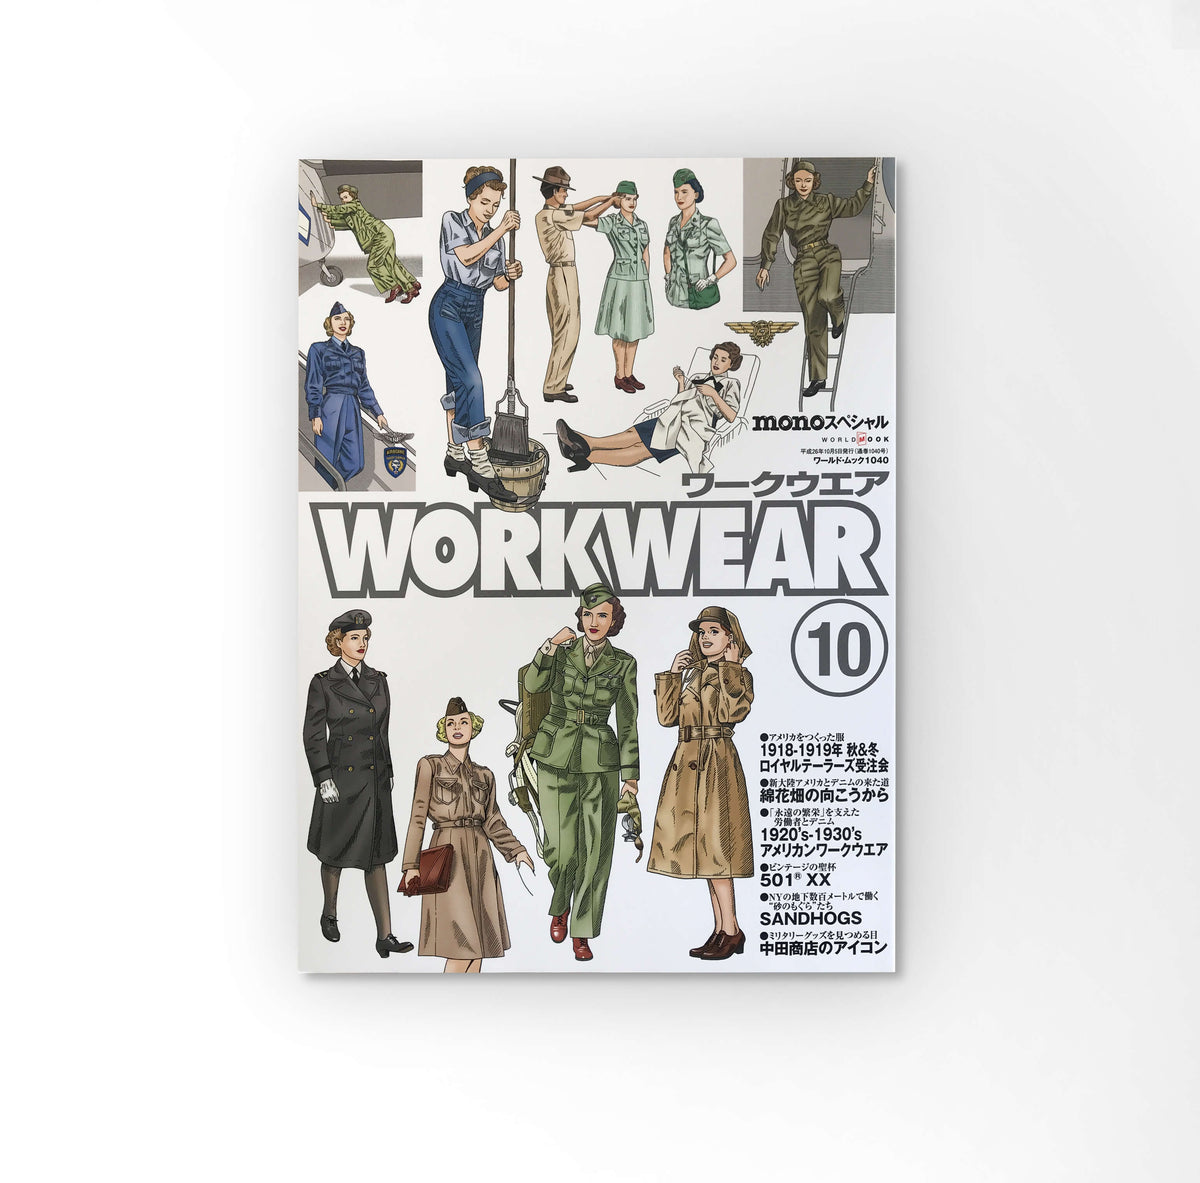 Workwear 10 - Unrecorded